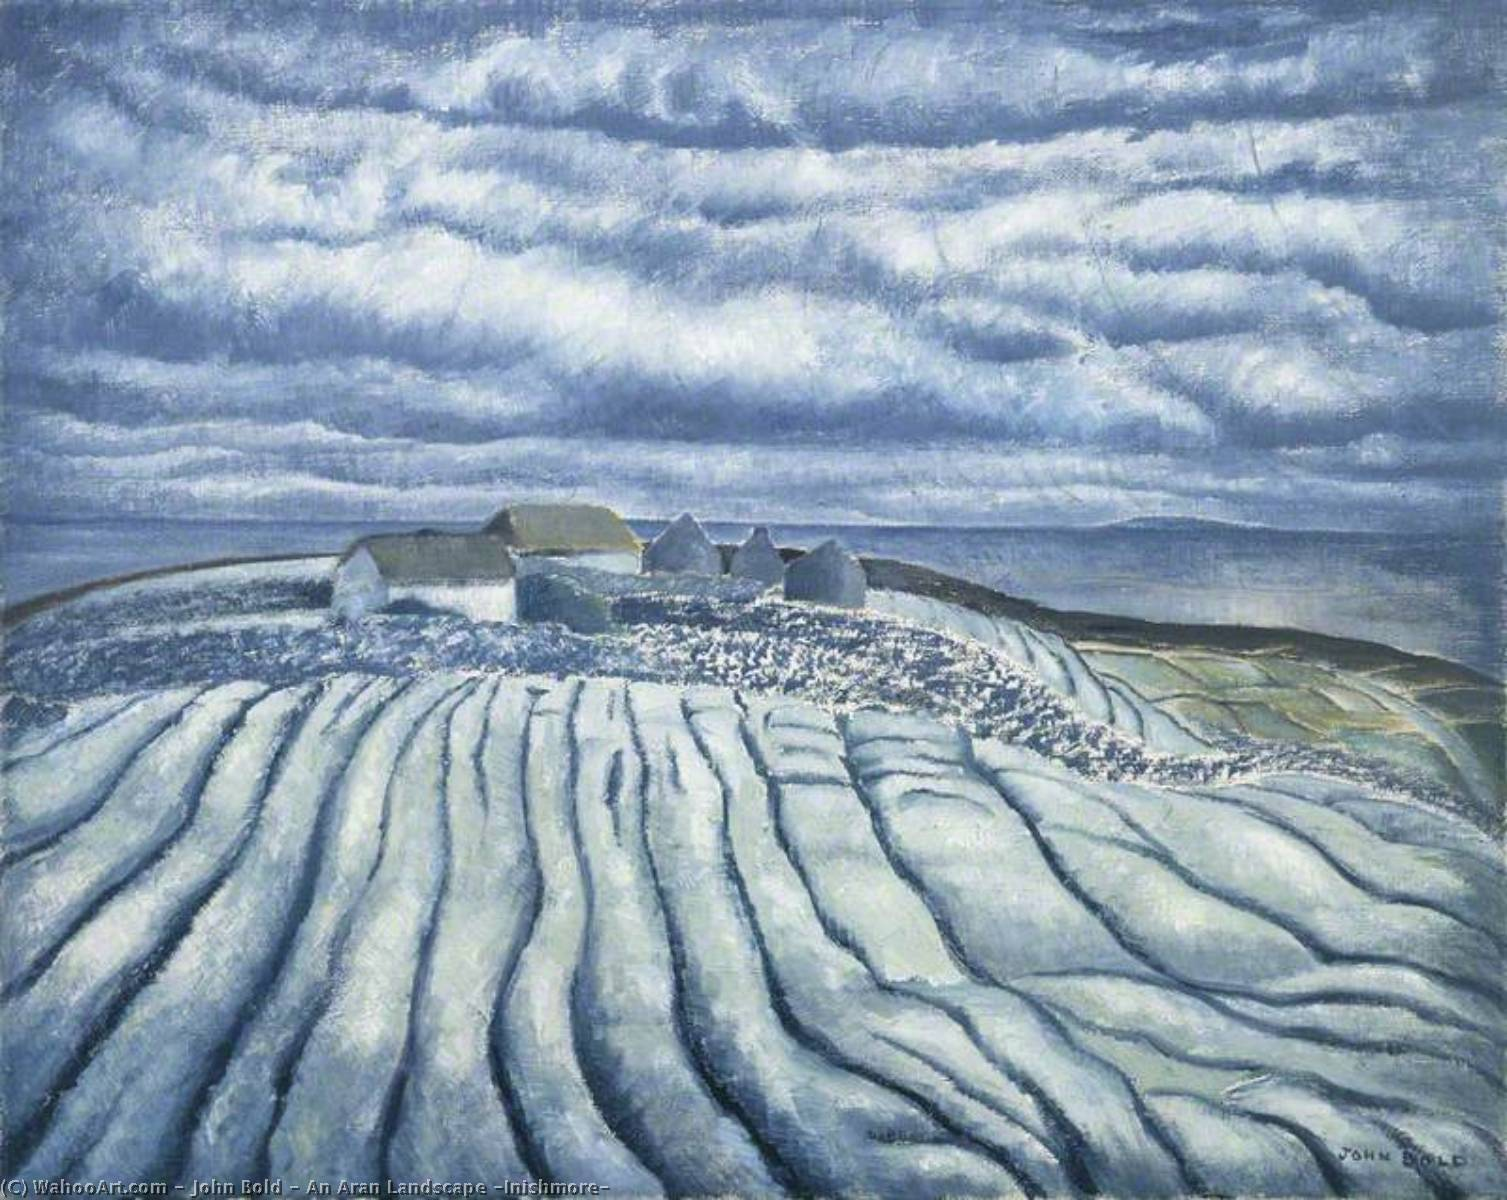 An Aran Landscape (Inishmore), Oil On Canvas by John Bold